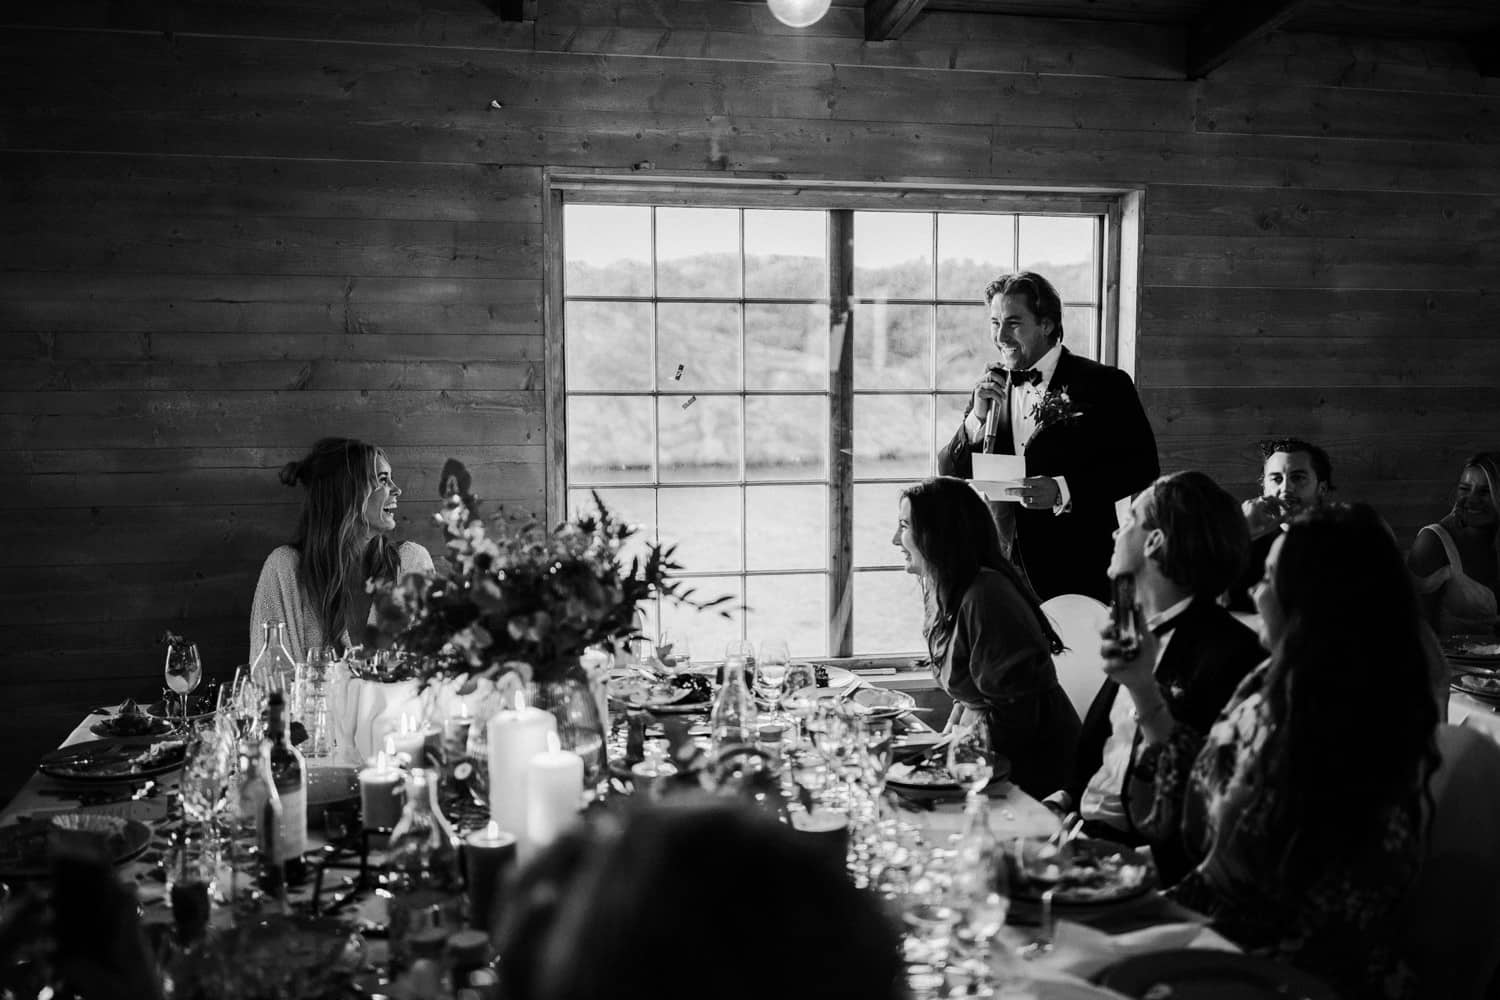 The groom is holding a speech.